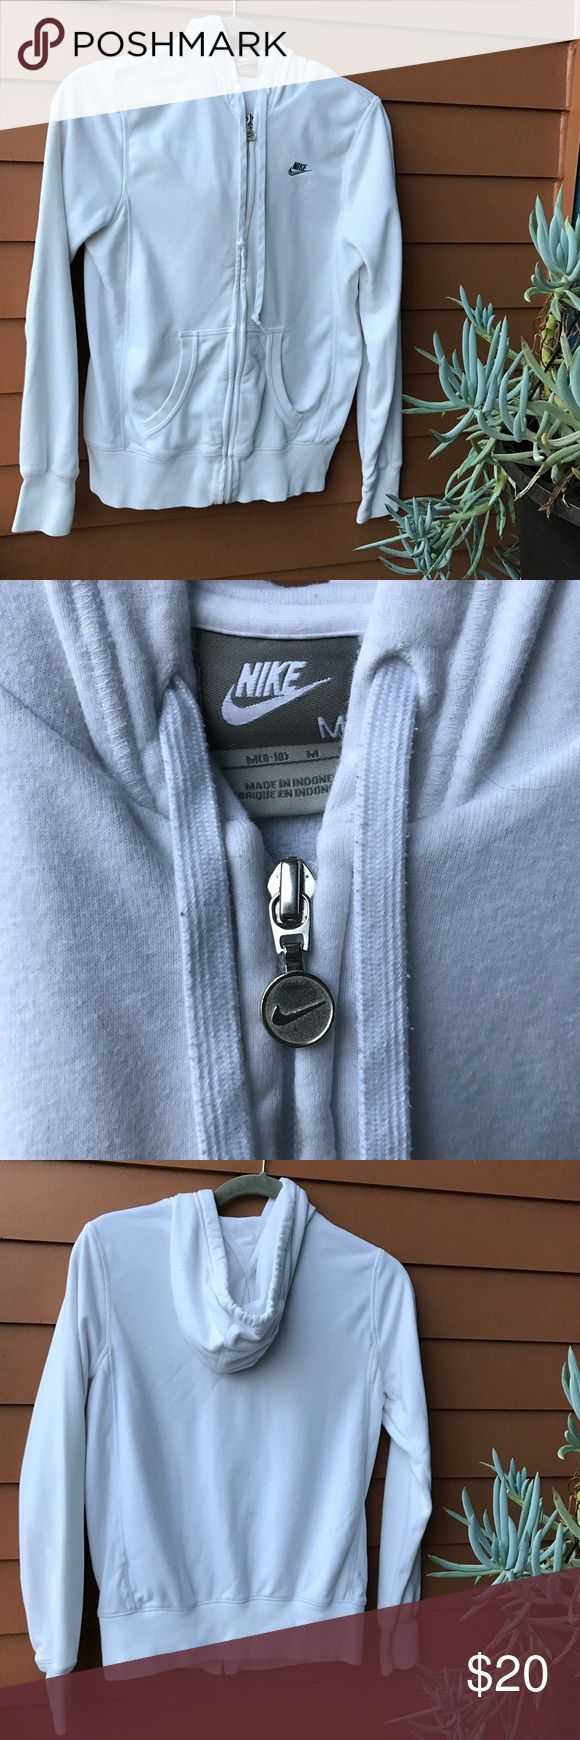 Nike white zip up hoodie sweatshirt medium Nike white zip up hoodie sweatshirt medium. Worn and washed once. A couple small and very un-noticeable stains on the back, photoed in last pictures for reference. Otherwise In good condition. Nike Tops Sweatshirts & Hoodies